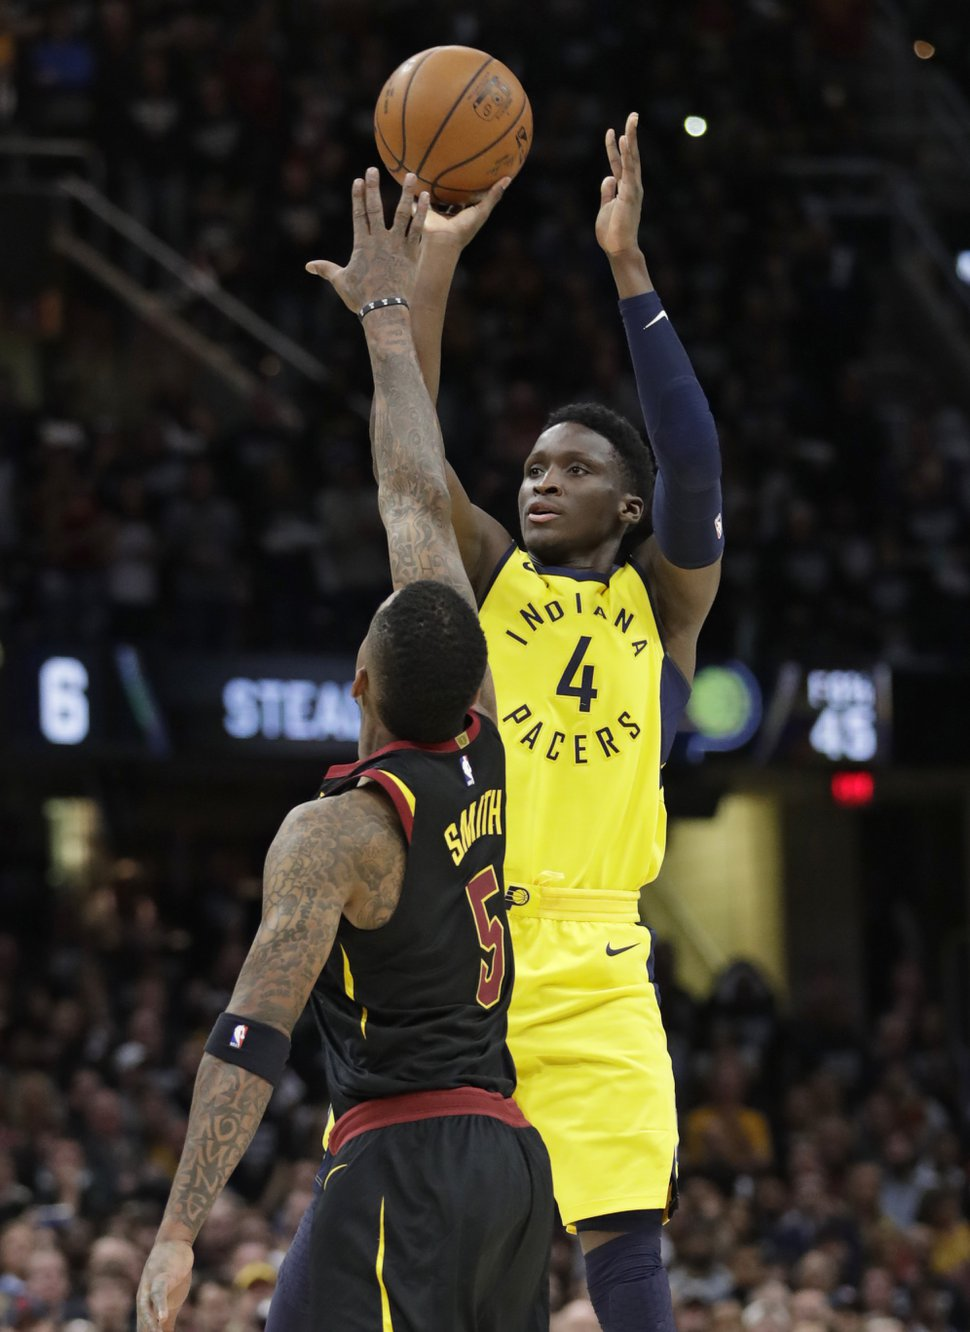 Indiana Pacers' Victor Oladipo (4) shoots over Cleveland Cavaliers' JR Smith (5) in the second half of Game 7 of an NBA basketball first-round playoff series, Sunday, April 29, 2018, in Cleveland. (AP Photo/Tony Dejak)